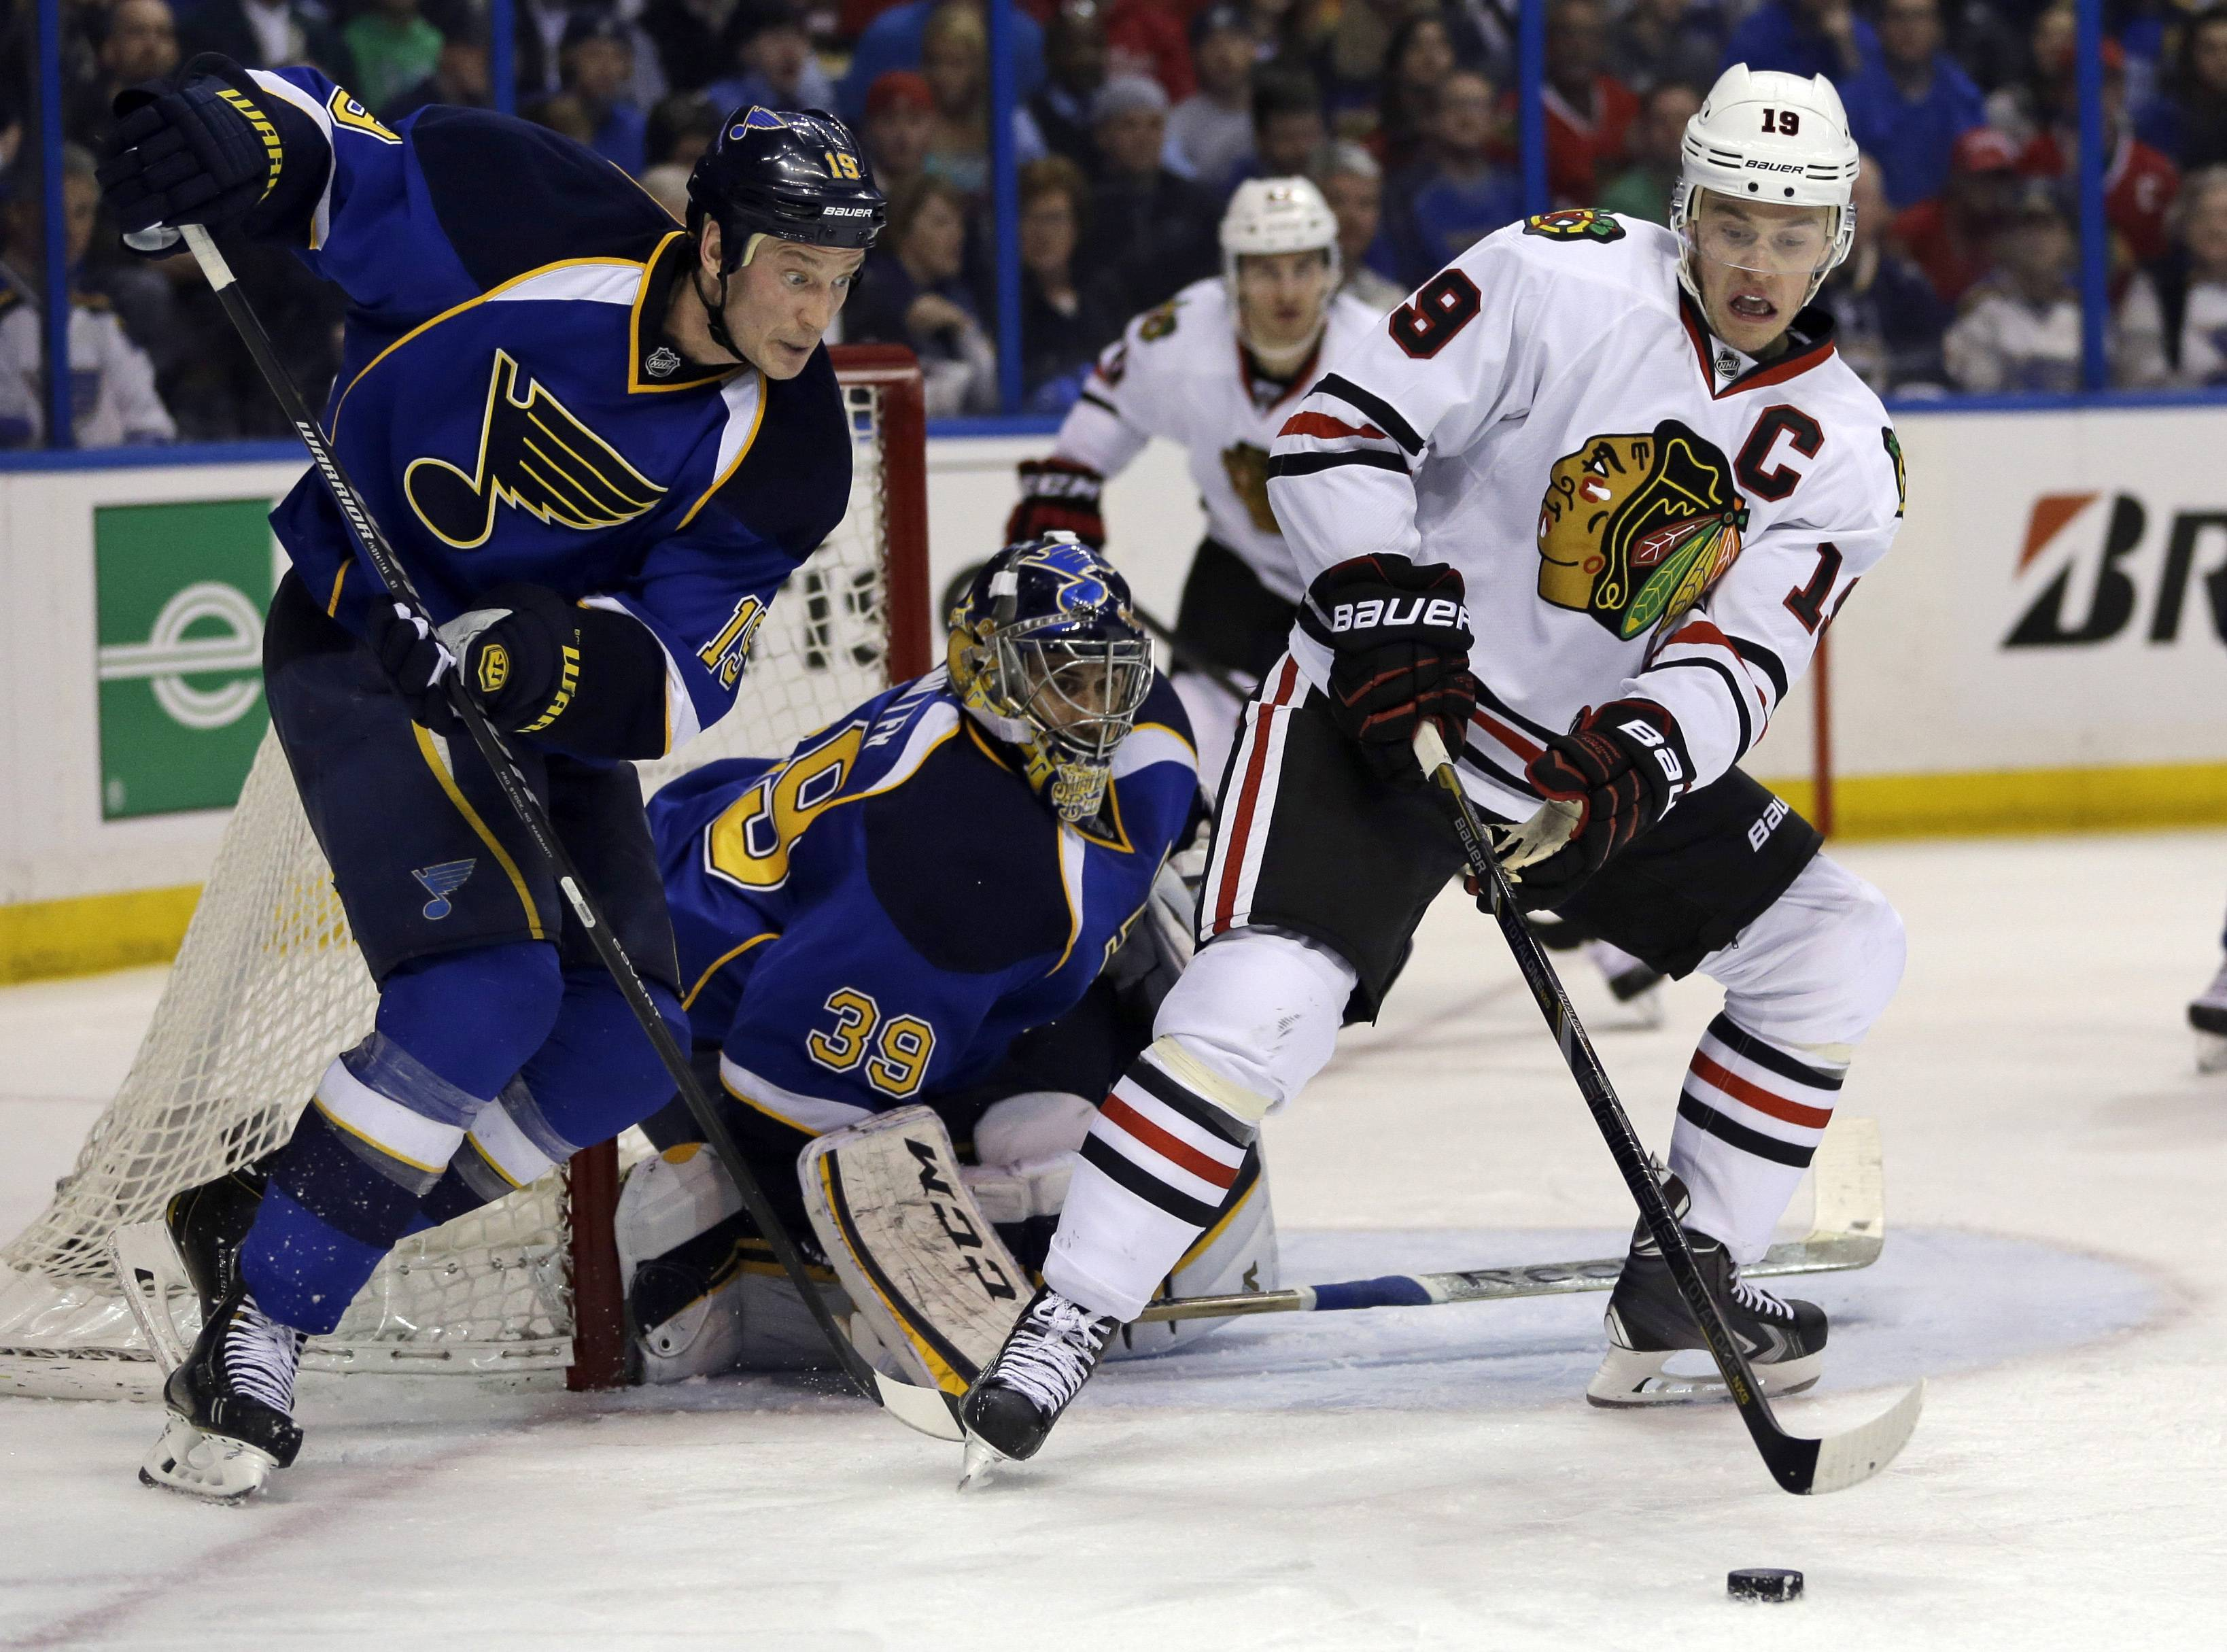 Chicago Blackhawks' Jonathan Toews, right, controls the puck as St. Louis Blues goalie Ryan Miller and Jay Bouwmeester, left, defend during the third period.